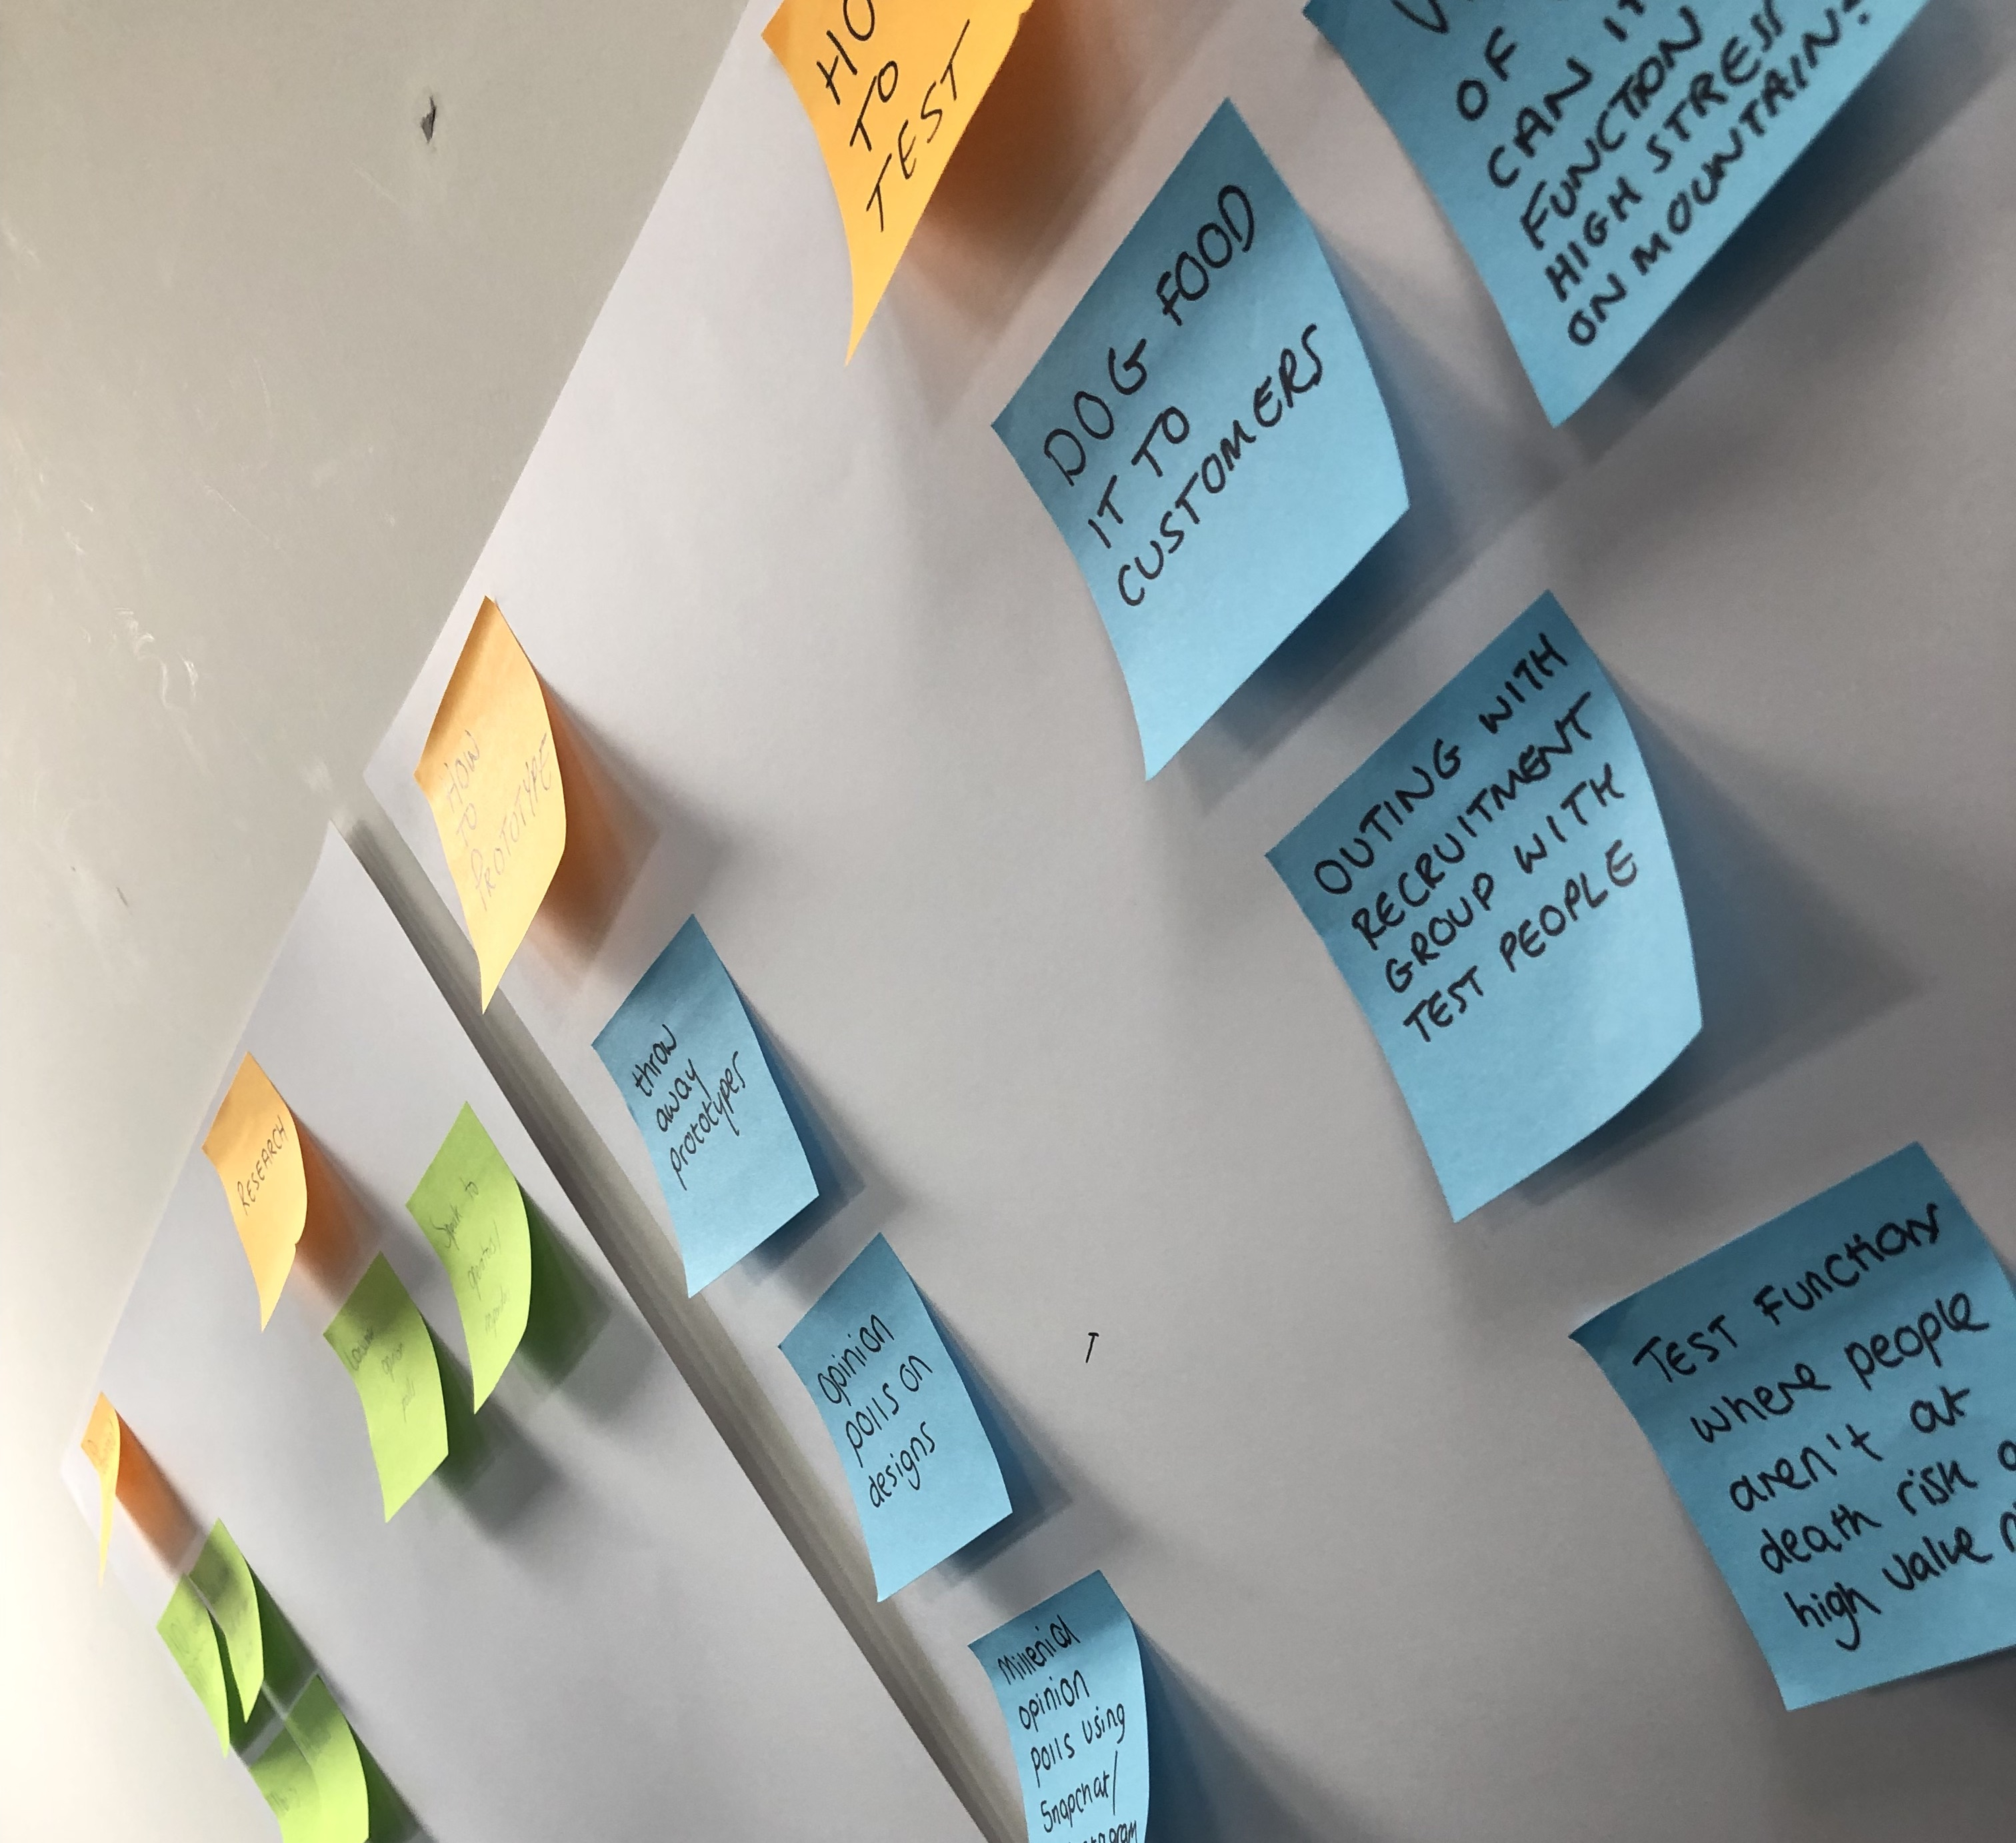 It's not Agile without a wall of post its!